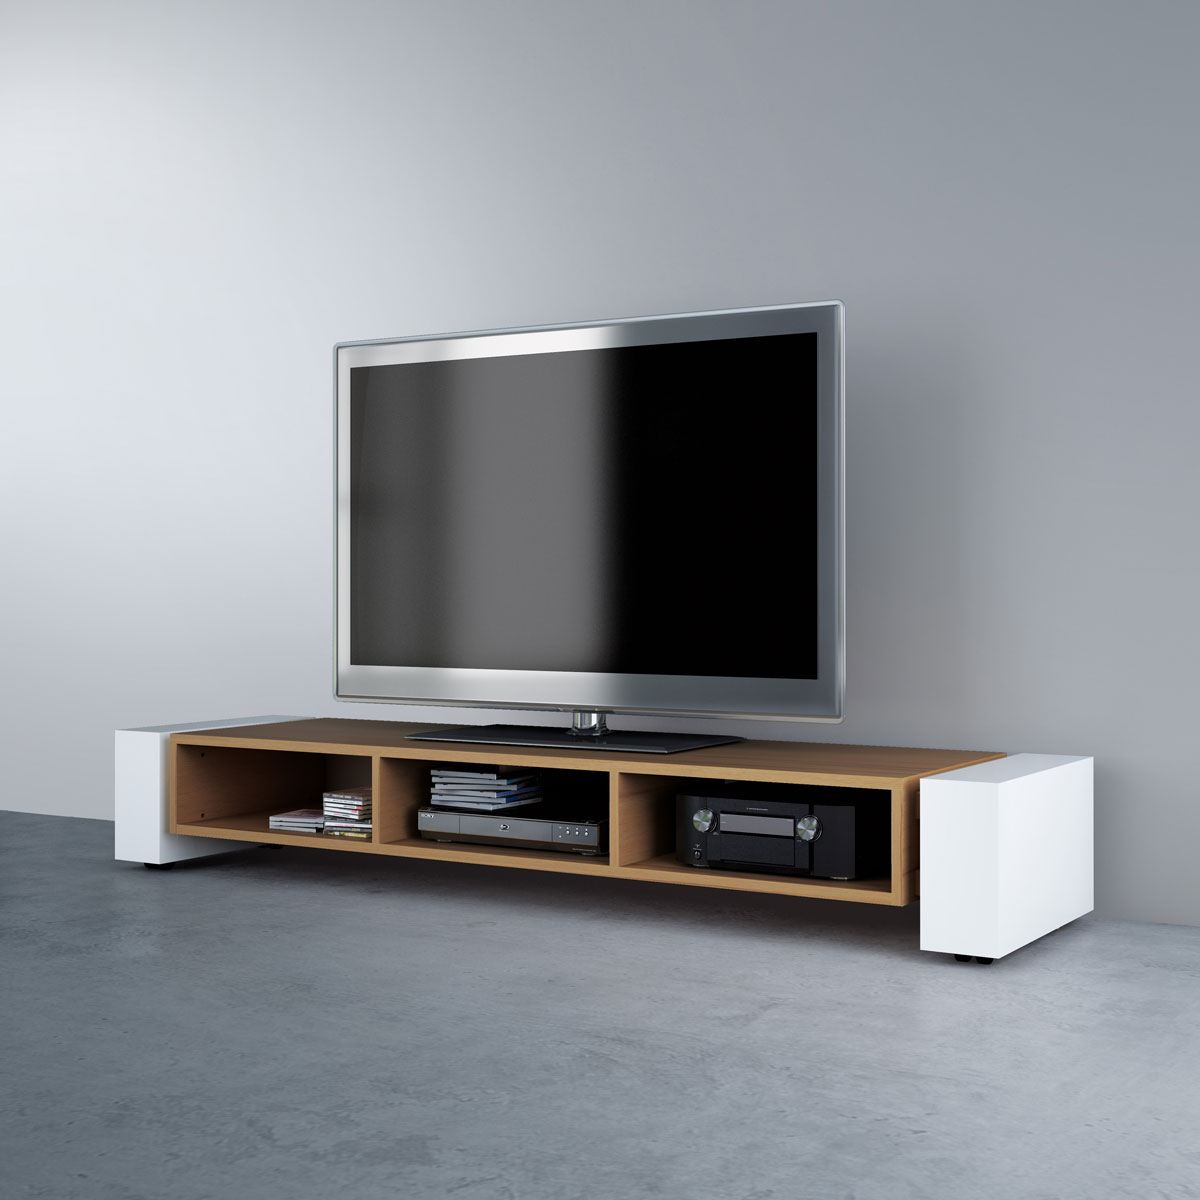 flatscreenhalterung archive tv m bel und hifi m bel guide. Black Bedroom Furniture Sets. Home Design Ideas